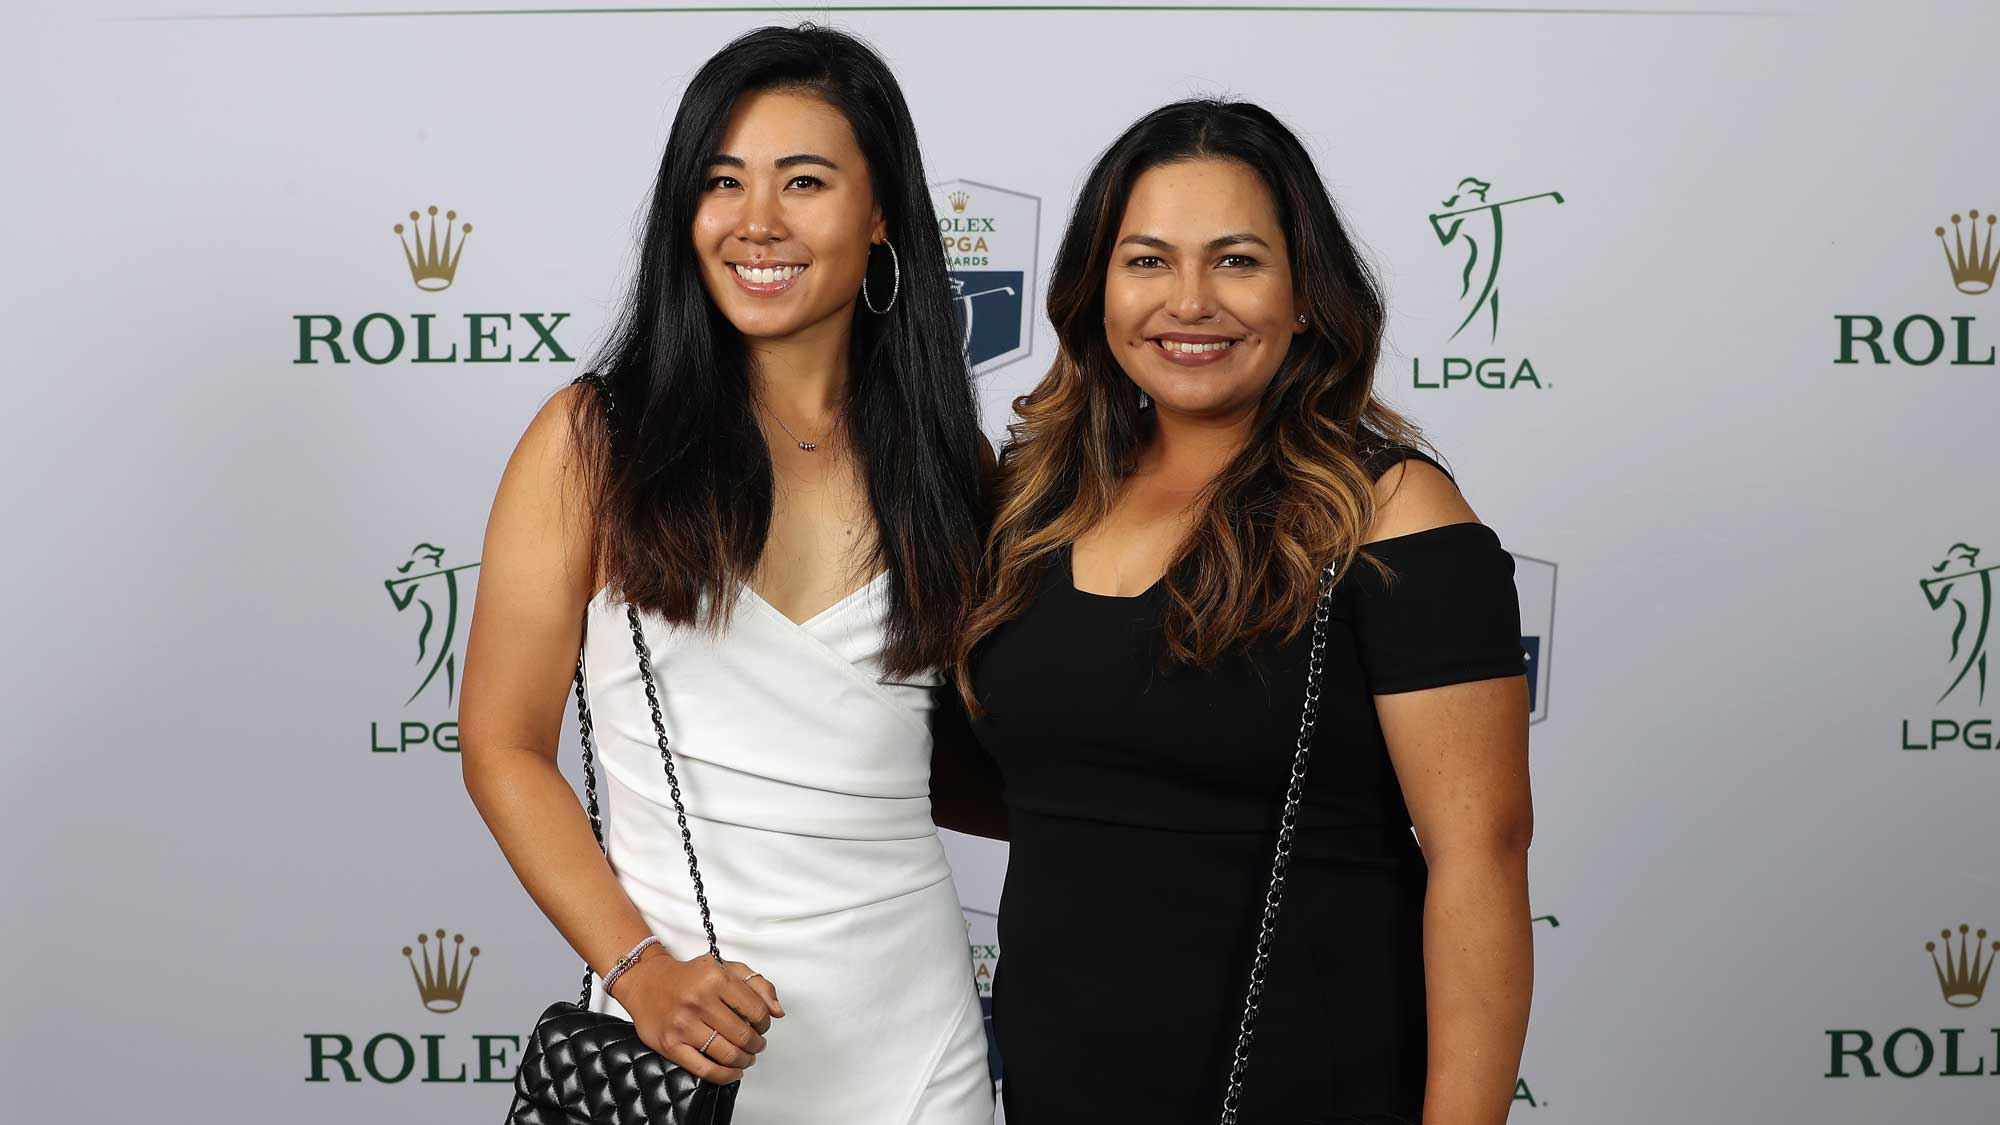 2017 Rolex First-Time Winner Danielle Kang of the United States (L) poses with Lizette Salas of the United States (R) during the LPGA Rolex Players Awards at The Ritz-Carlton Golf Resort